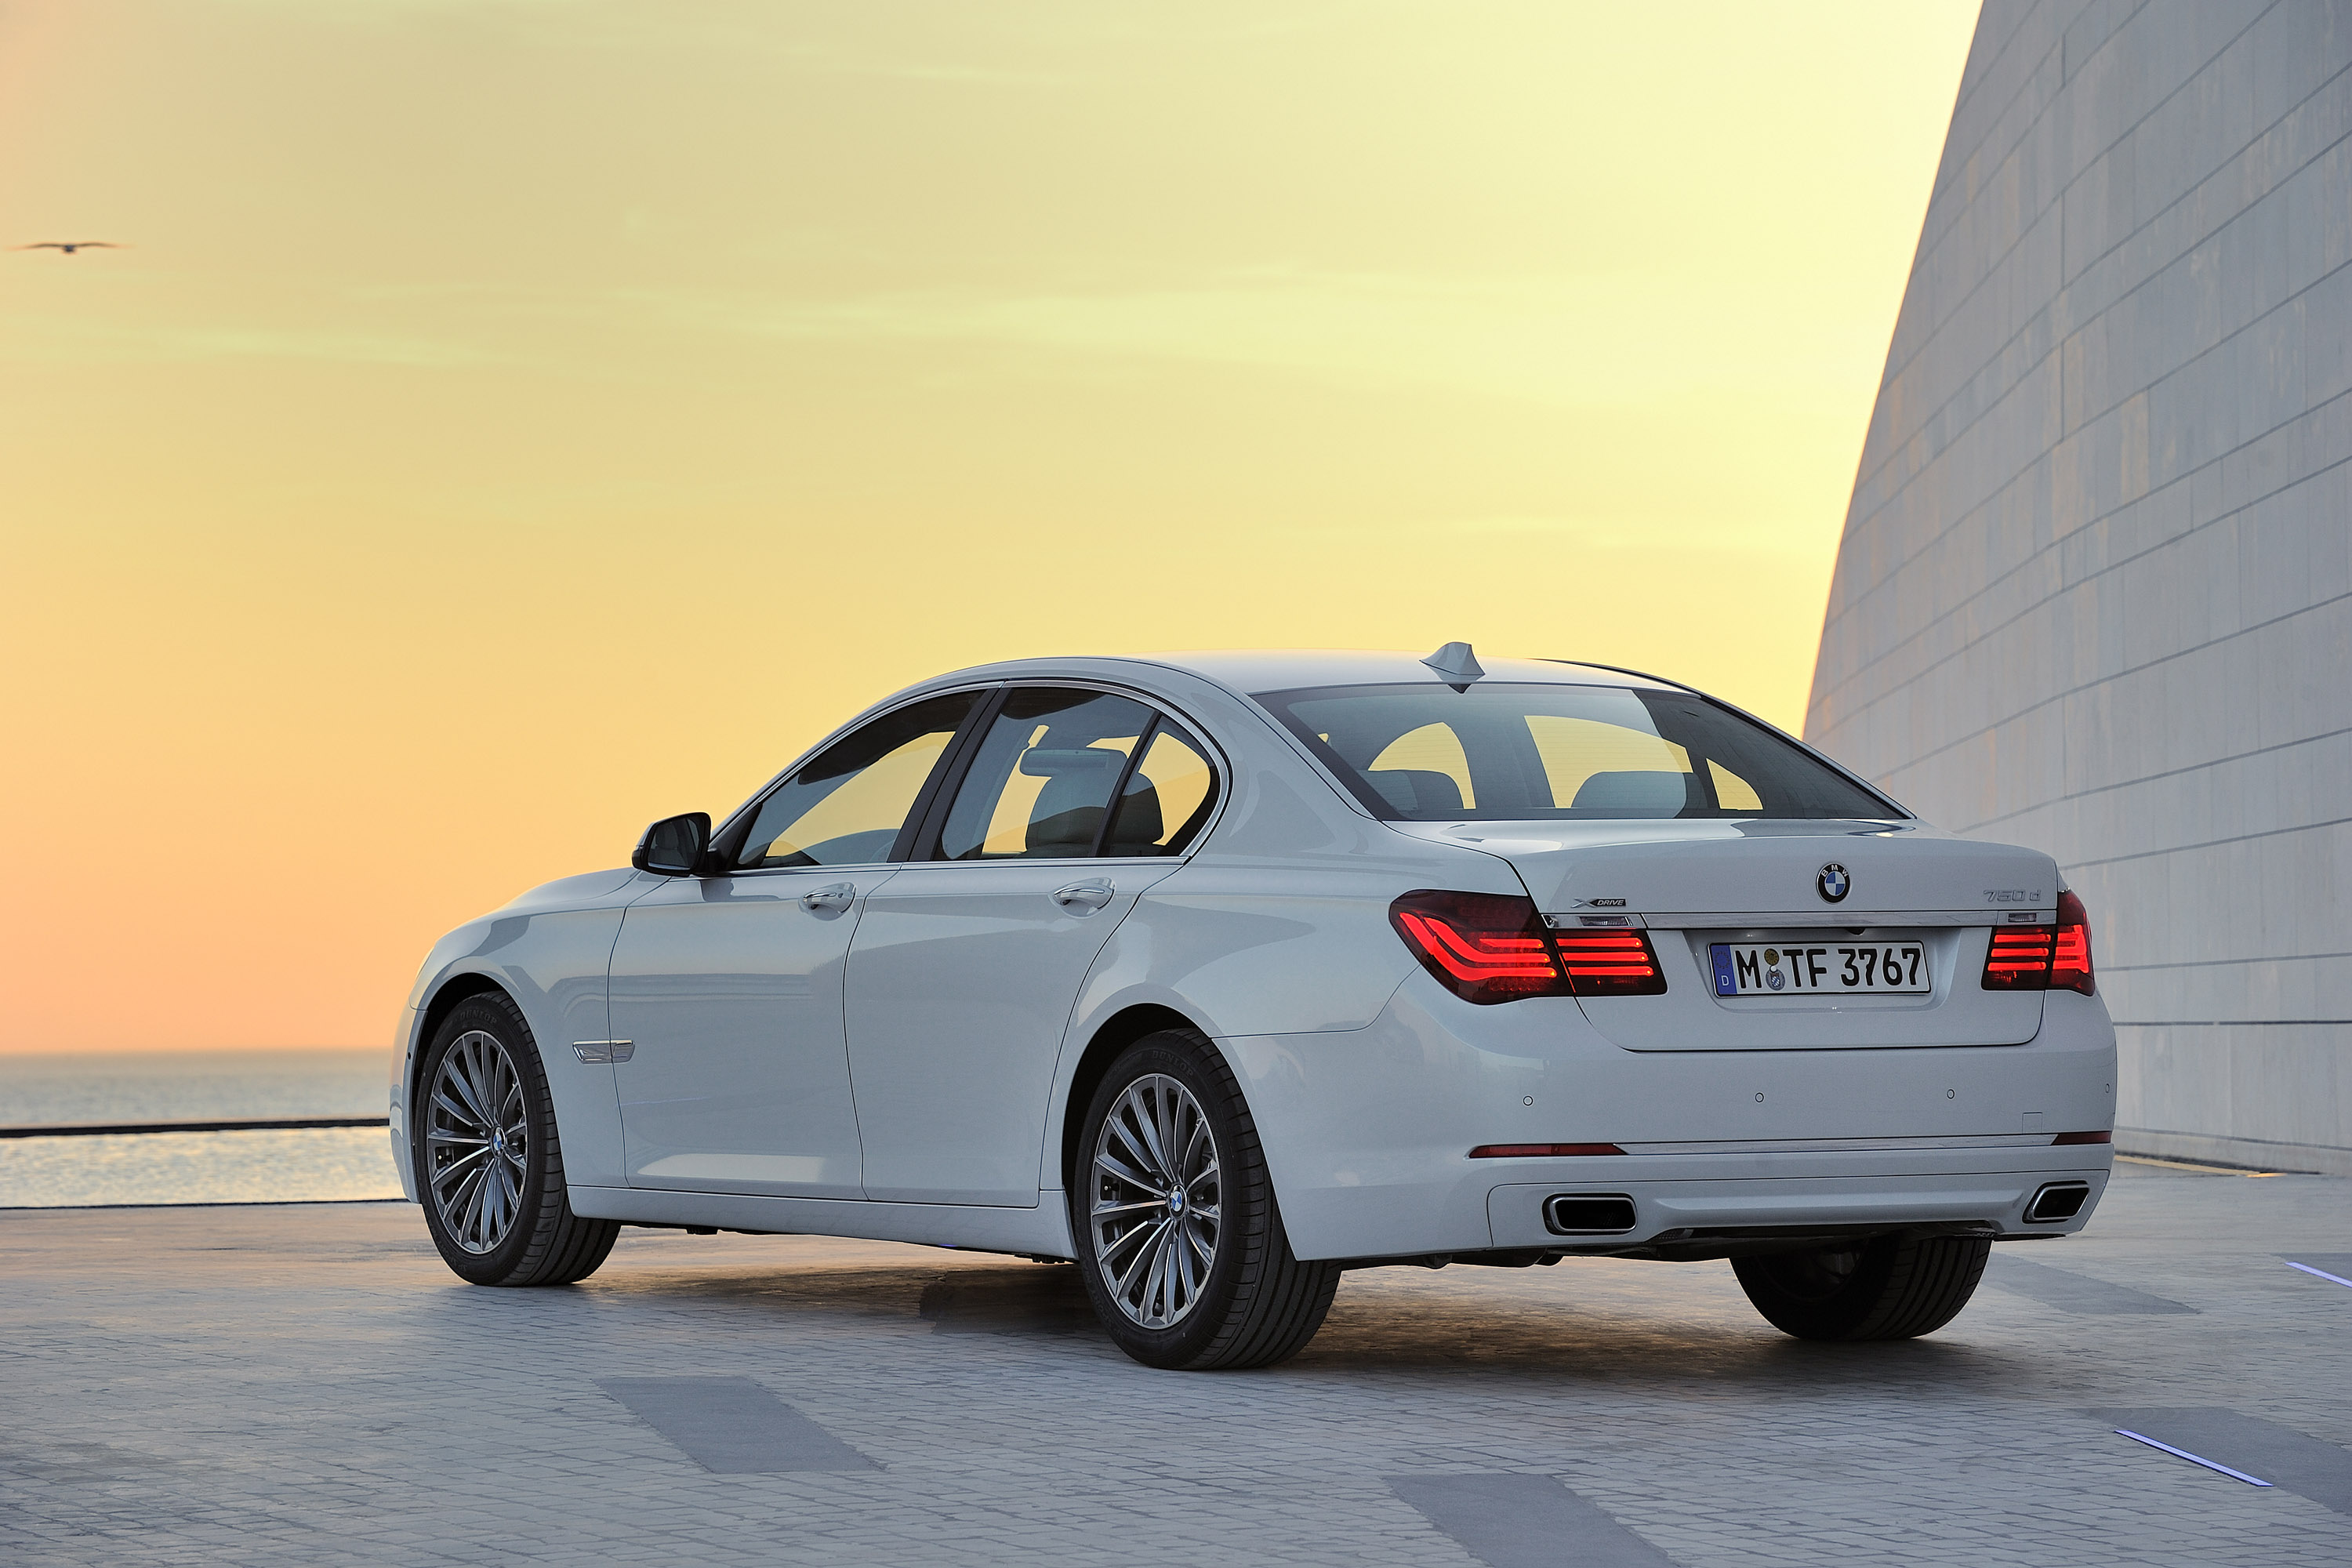 2000 Bmw 7 Series Protection (50 Images) - HD Car Wallpaper